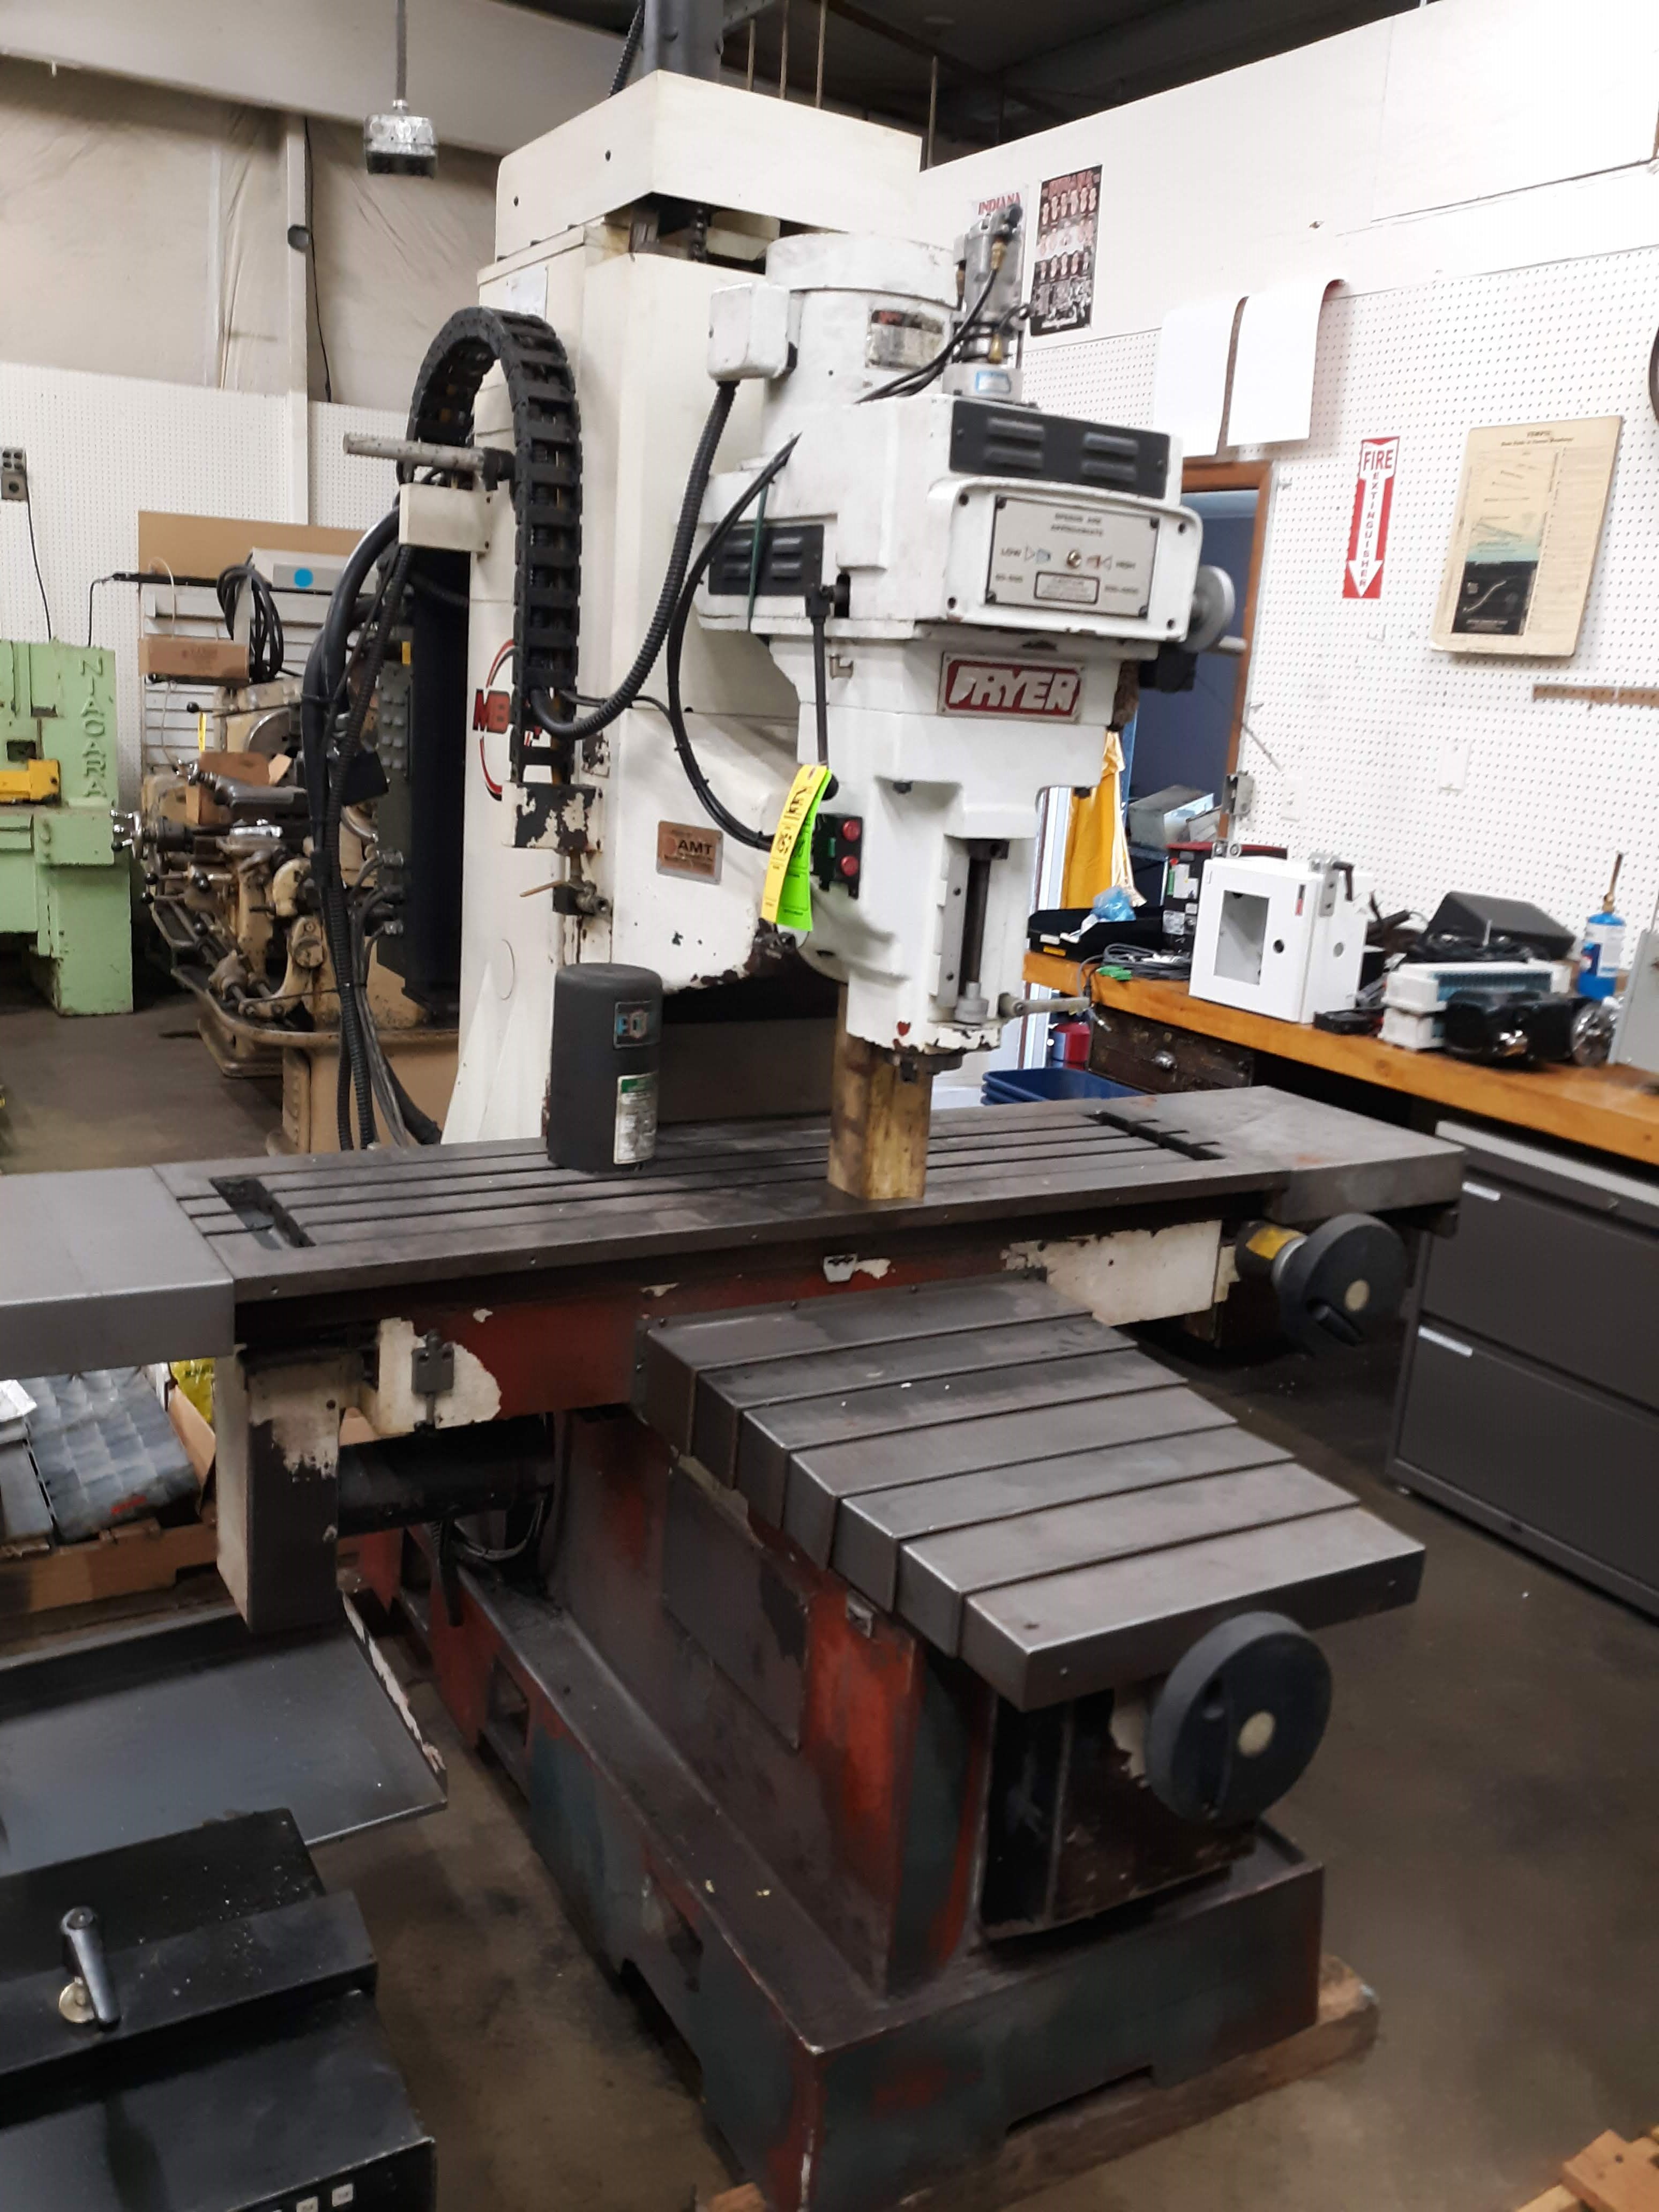 FRYER CNC MILLING MACHINE MODEL-MB-14 S#14247 54 X 16 TABLE ANILAM 3300 MK DRO (LOCATED AT: 432 - Image 3 of 8